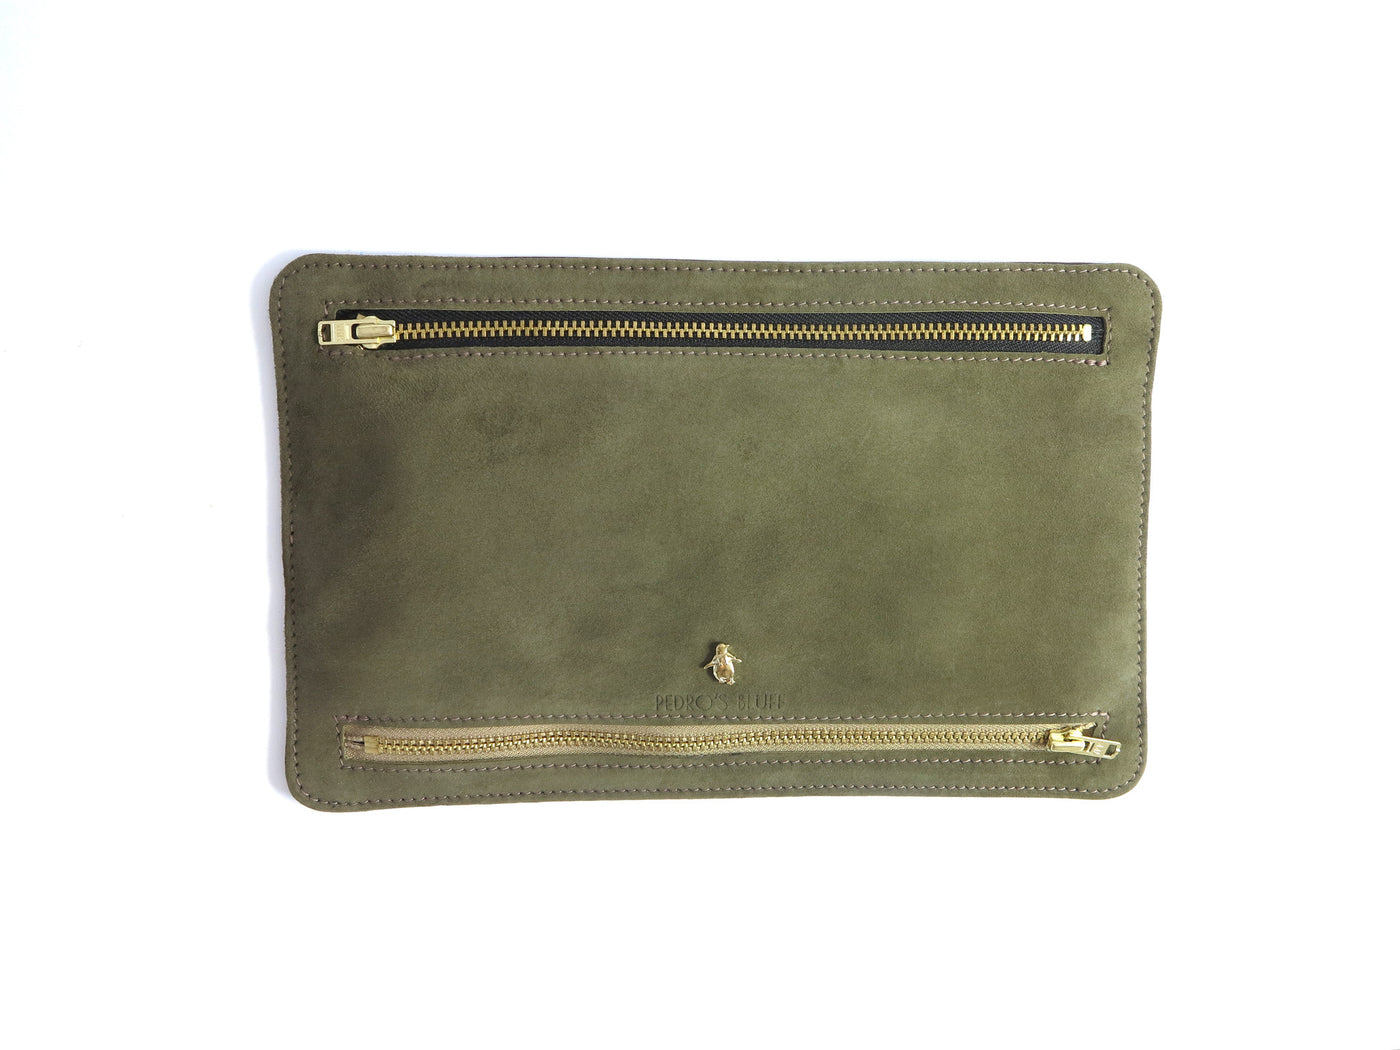 Globehopper Wallet - Olive Grove - PEDRO'S BLUFF - New Zealand Leather Bags & Accessories